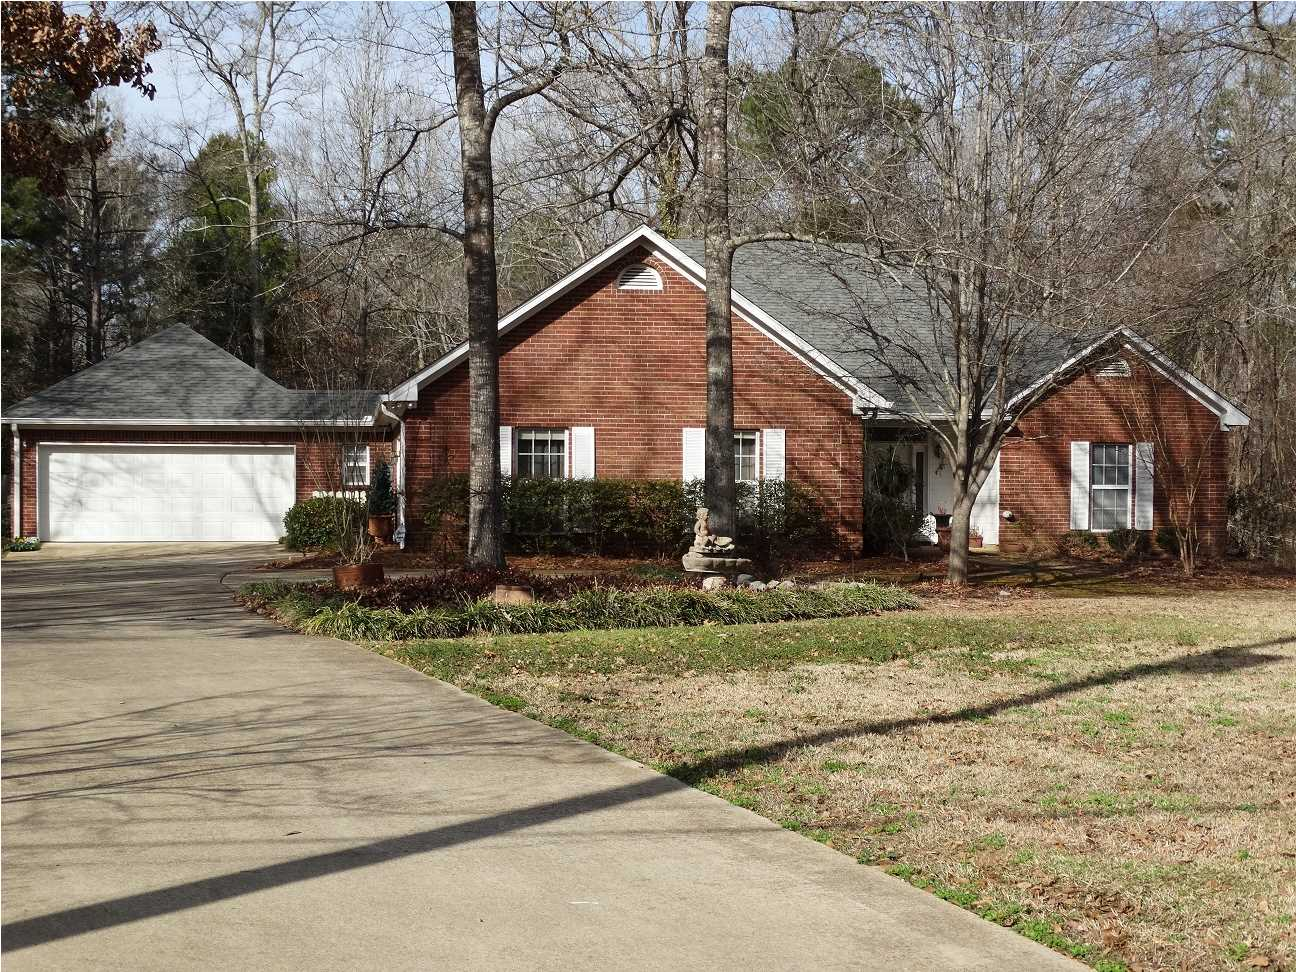 Real Estate for Sale, ListingId: 26935764, Terry,MS39170